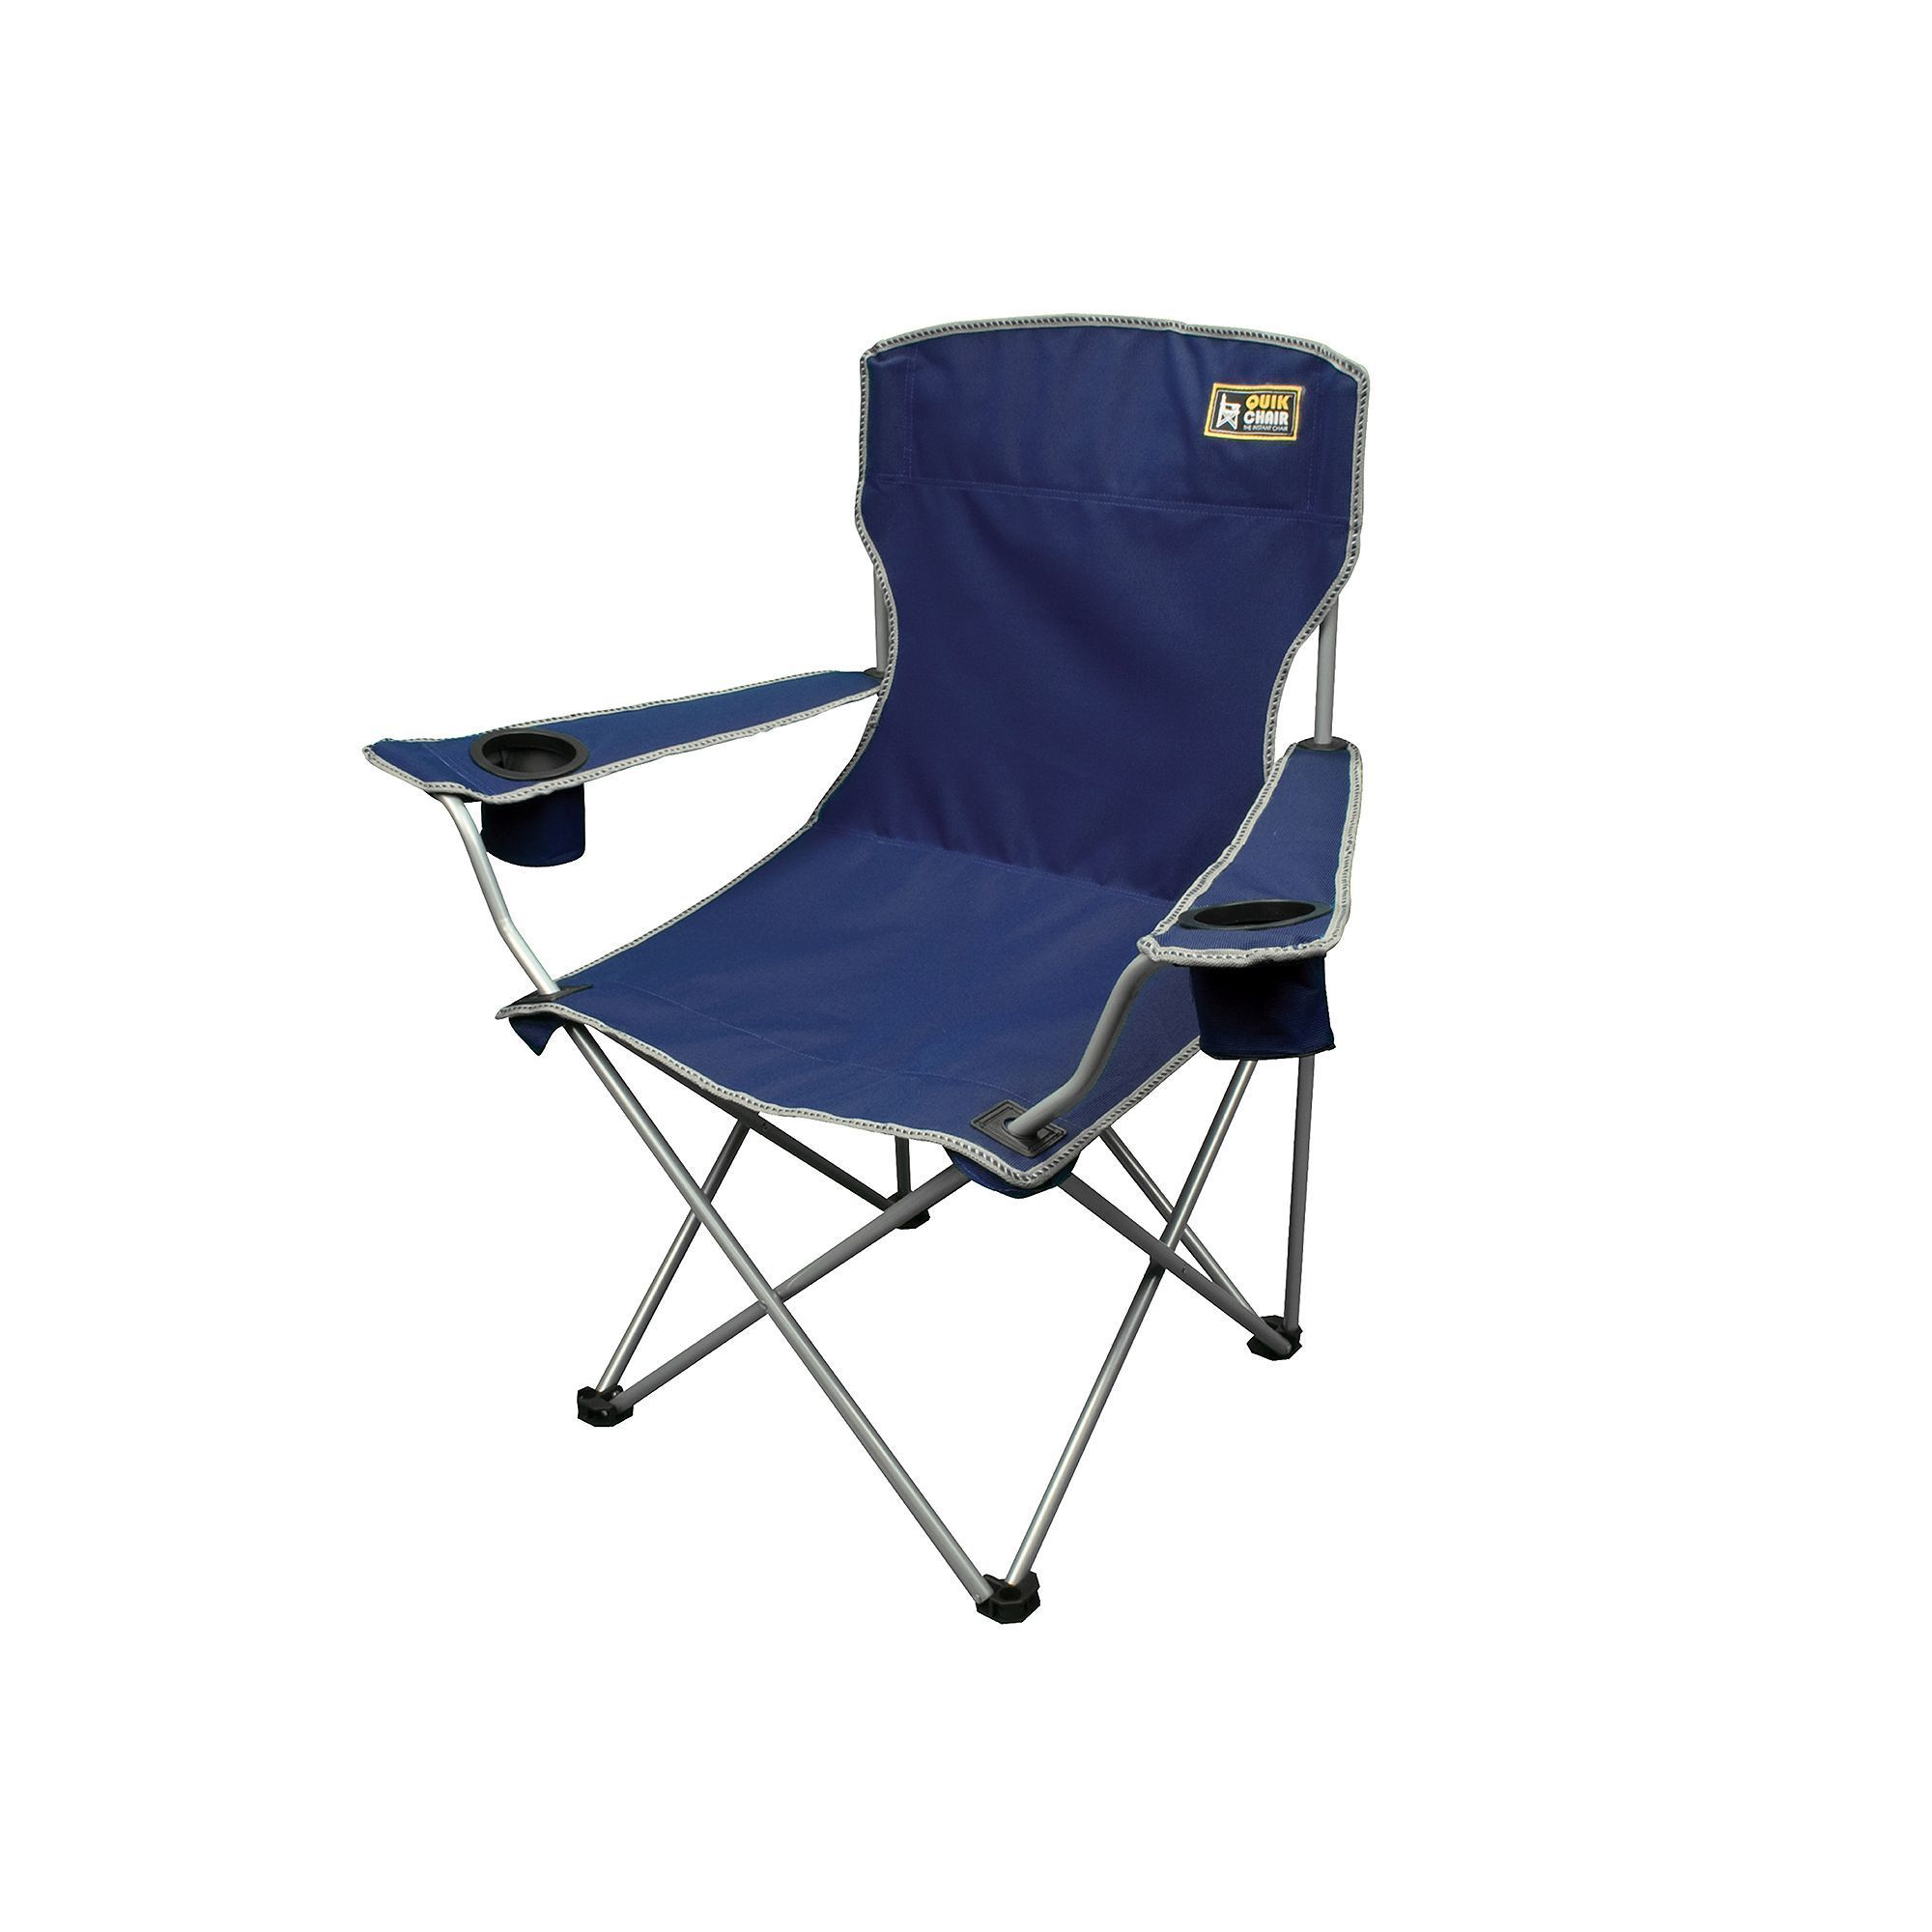 Outdoor Quik Chair Deluxe Quad Folding Camp Chair Blue Navy